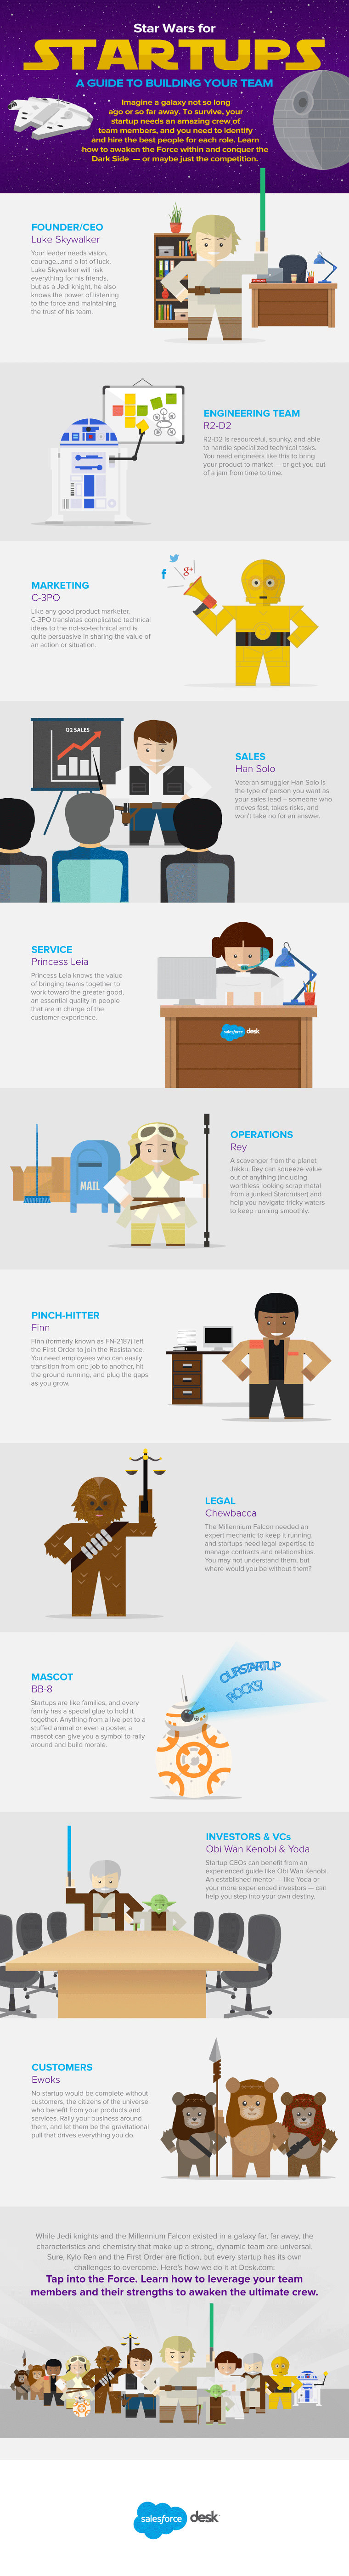 Star Wars of Startups - infographic by Salesforce Desk